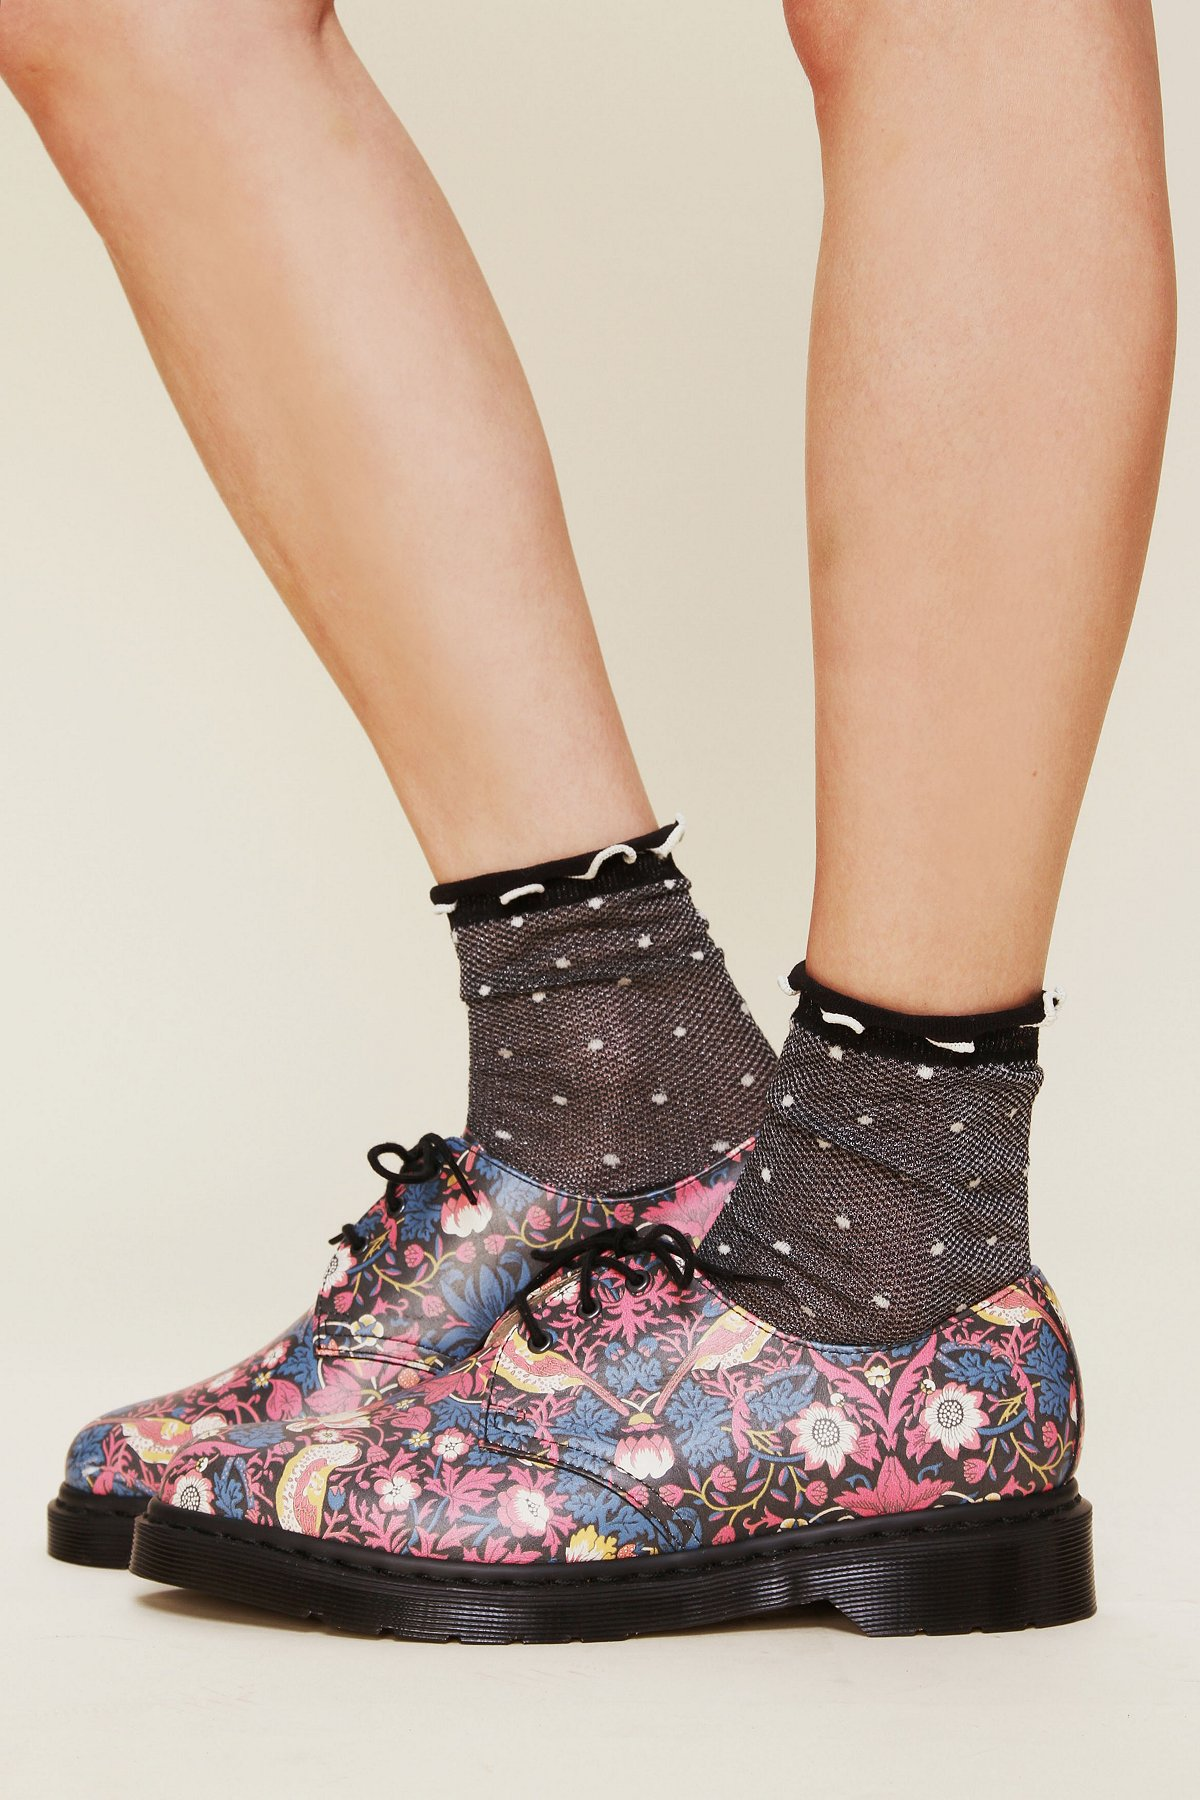 Liberty London for Doc Martens Floral Printed Gibson Oxford